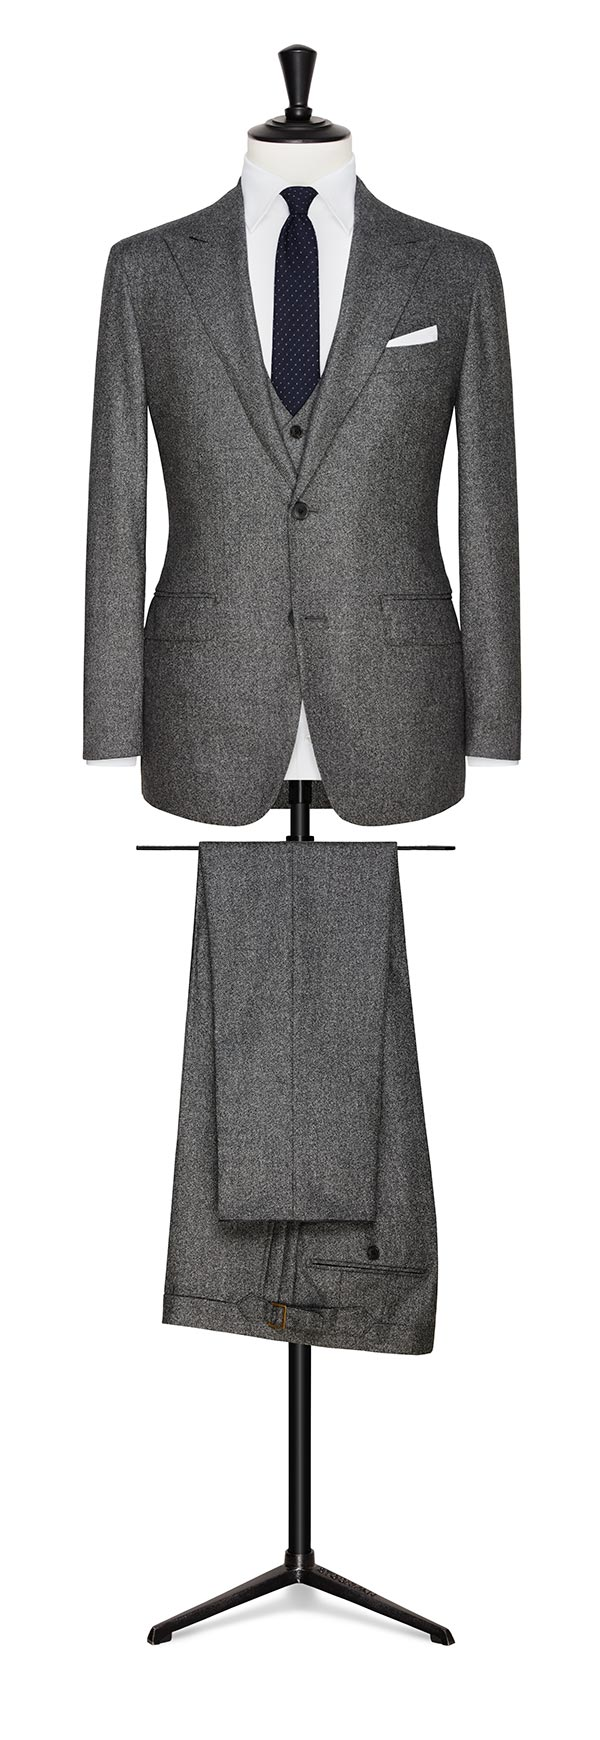 Maatpak Loro Piana - Dream Tweed 4